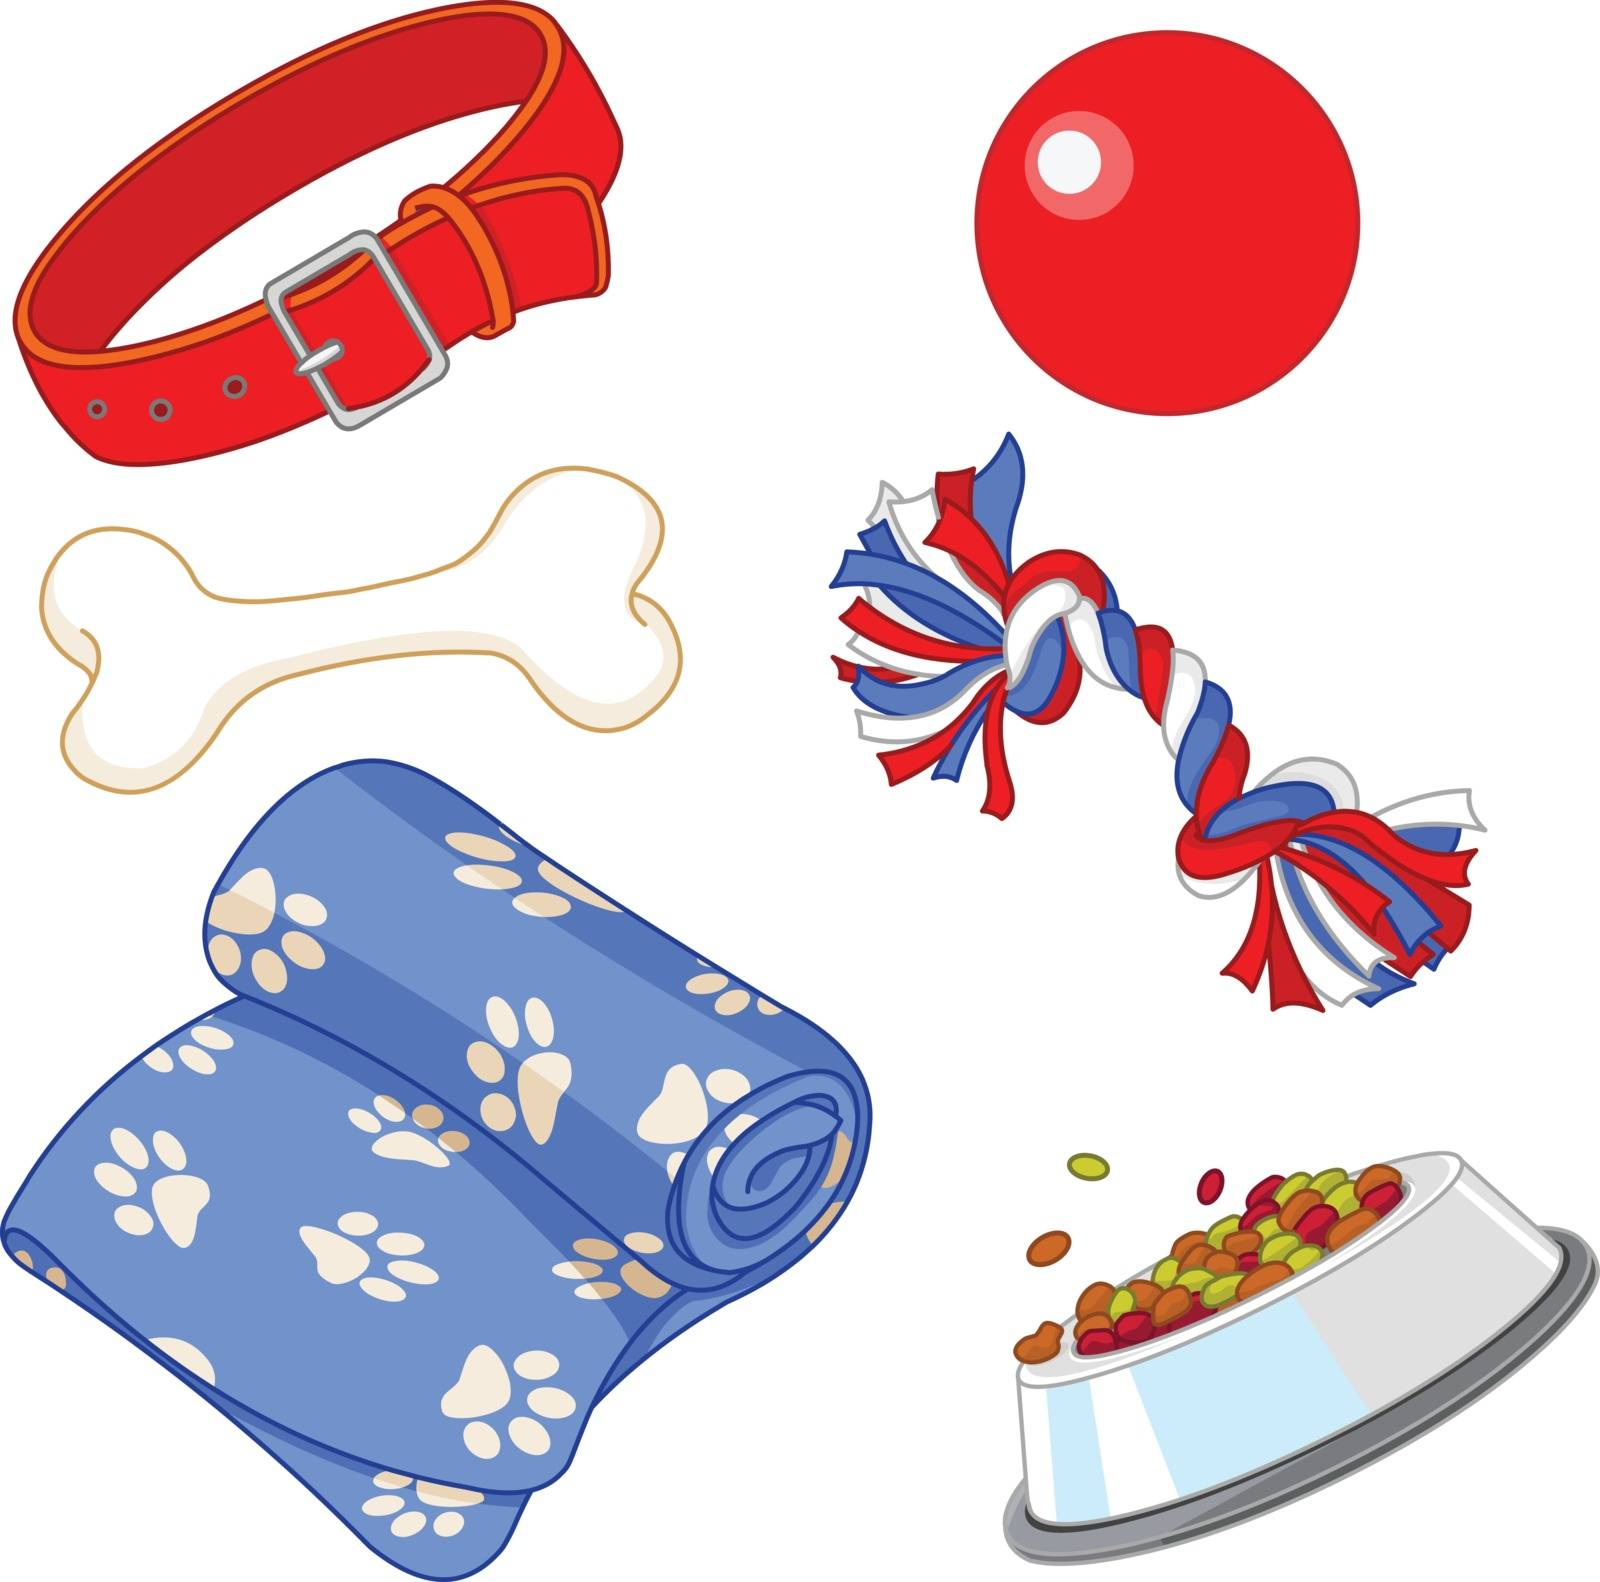 Some cute stuff for a lovely puppy